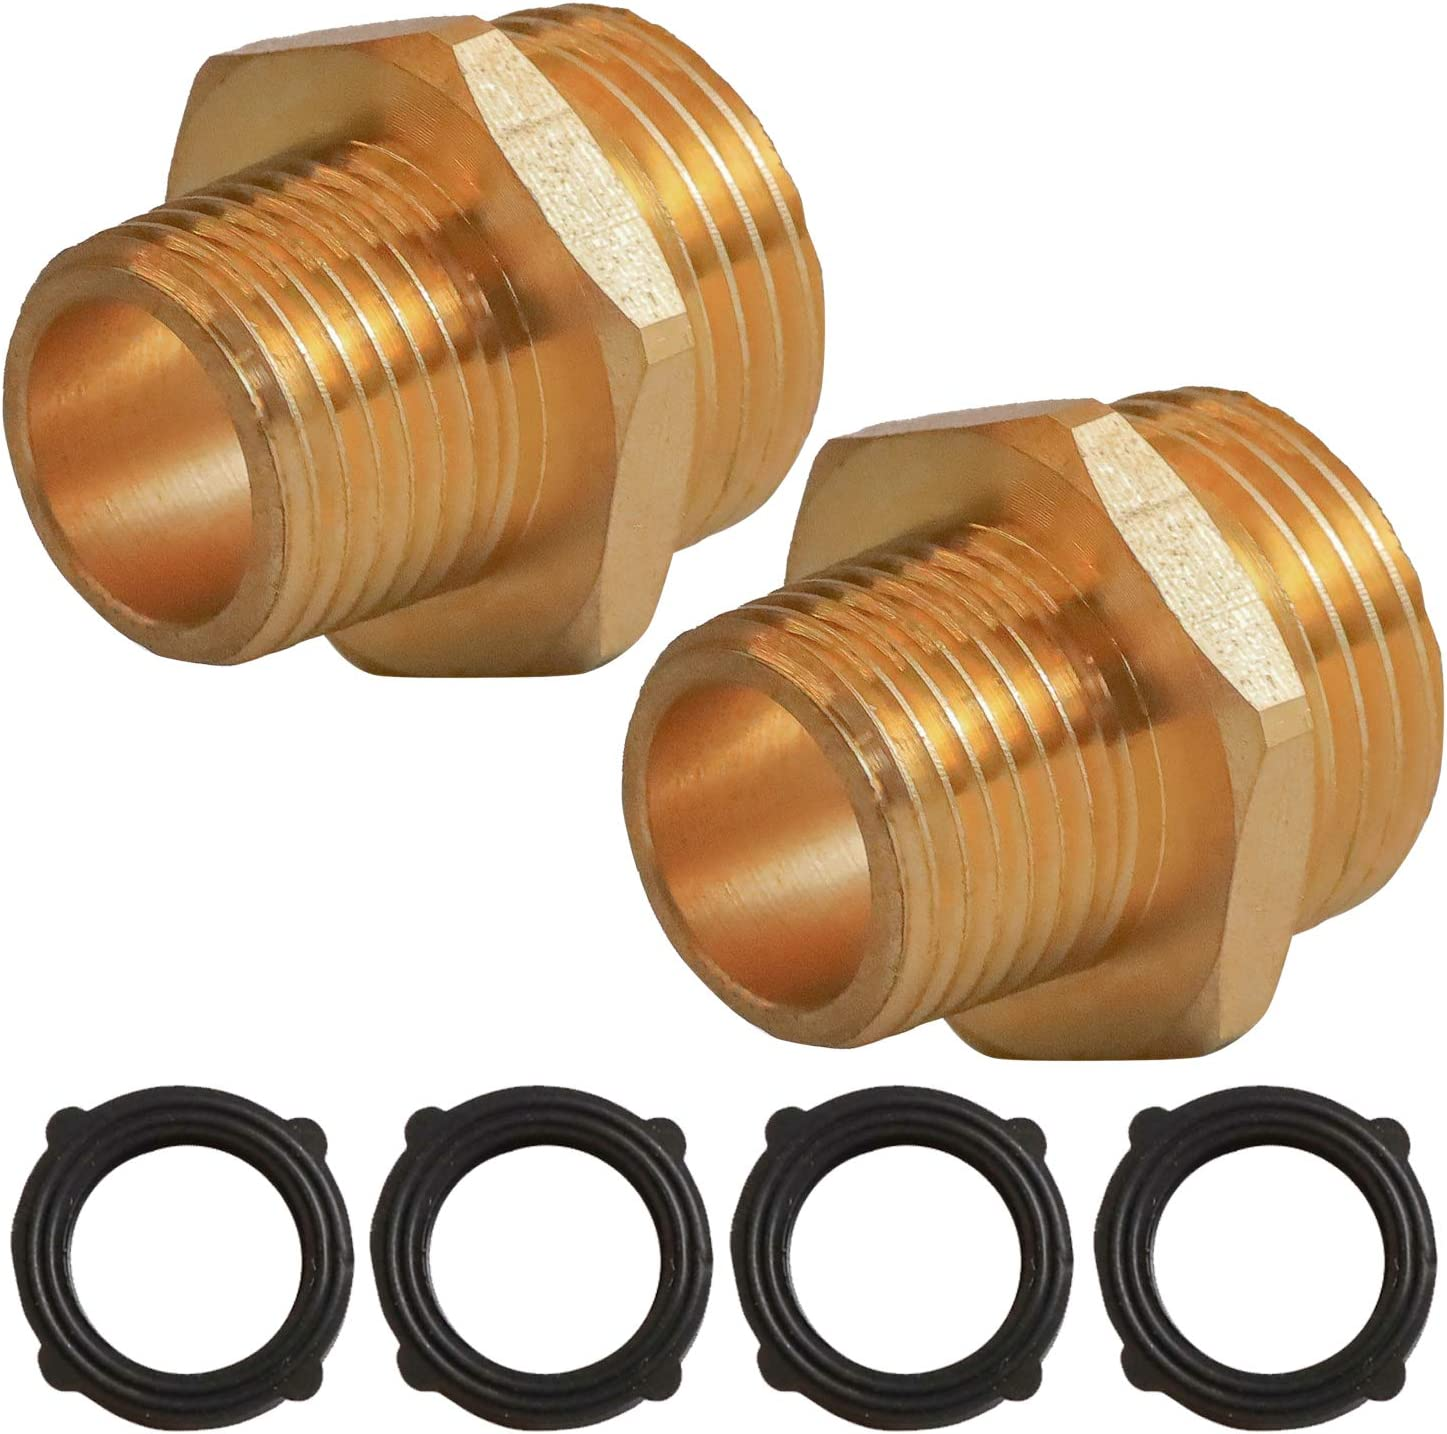 """Hourleey 3/4"""" GHT Male x 1/2"""" NPT Male Connector, Brass Garden Hose Fitting, Adapter, Industrial Metal Brass Garden Hose to Pipe Fittings Connect, 2 Pack"""